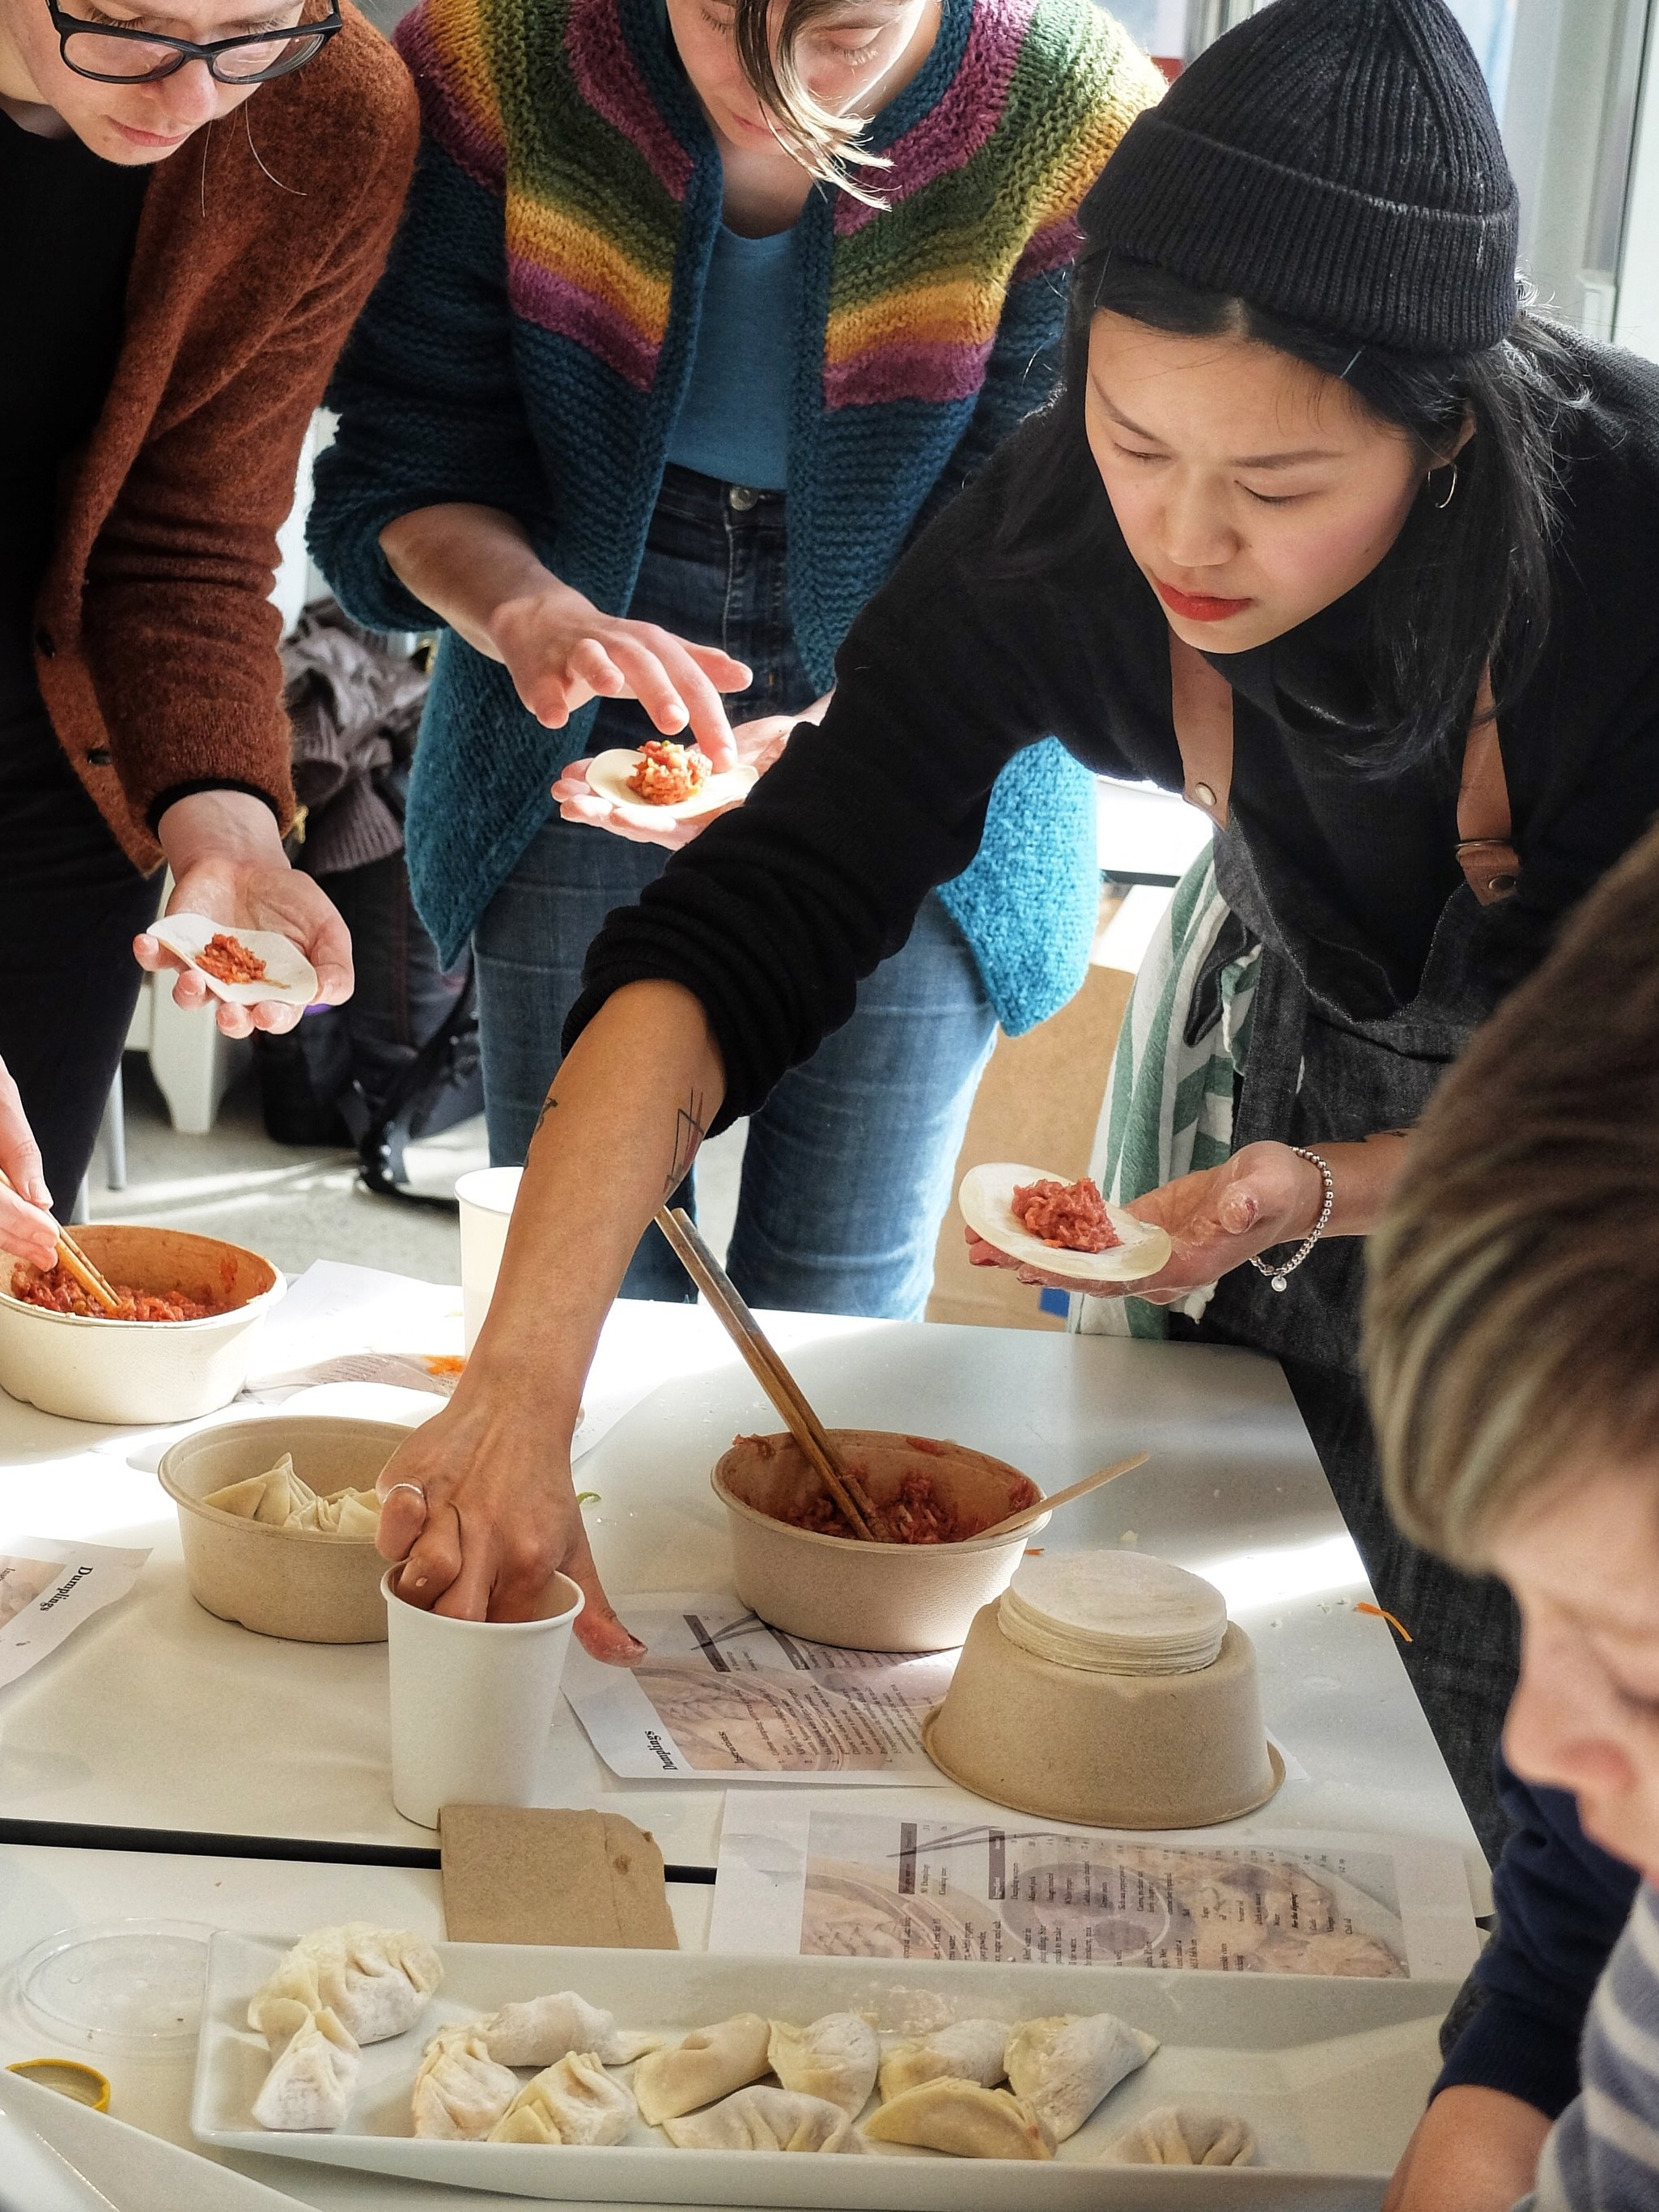 Workshop Dumplings 31.03.2019  Photo: Lana Zaychenko